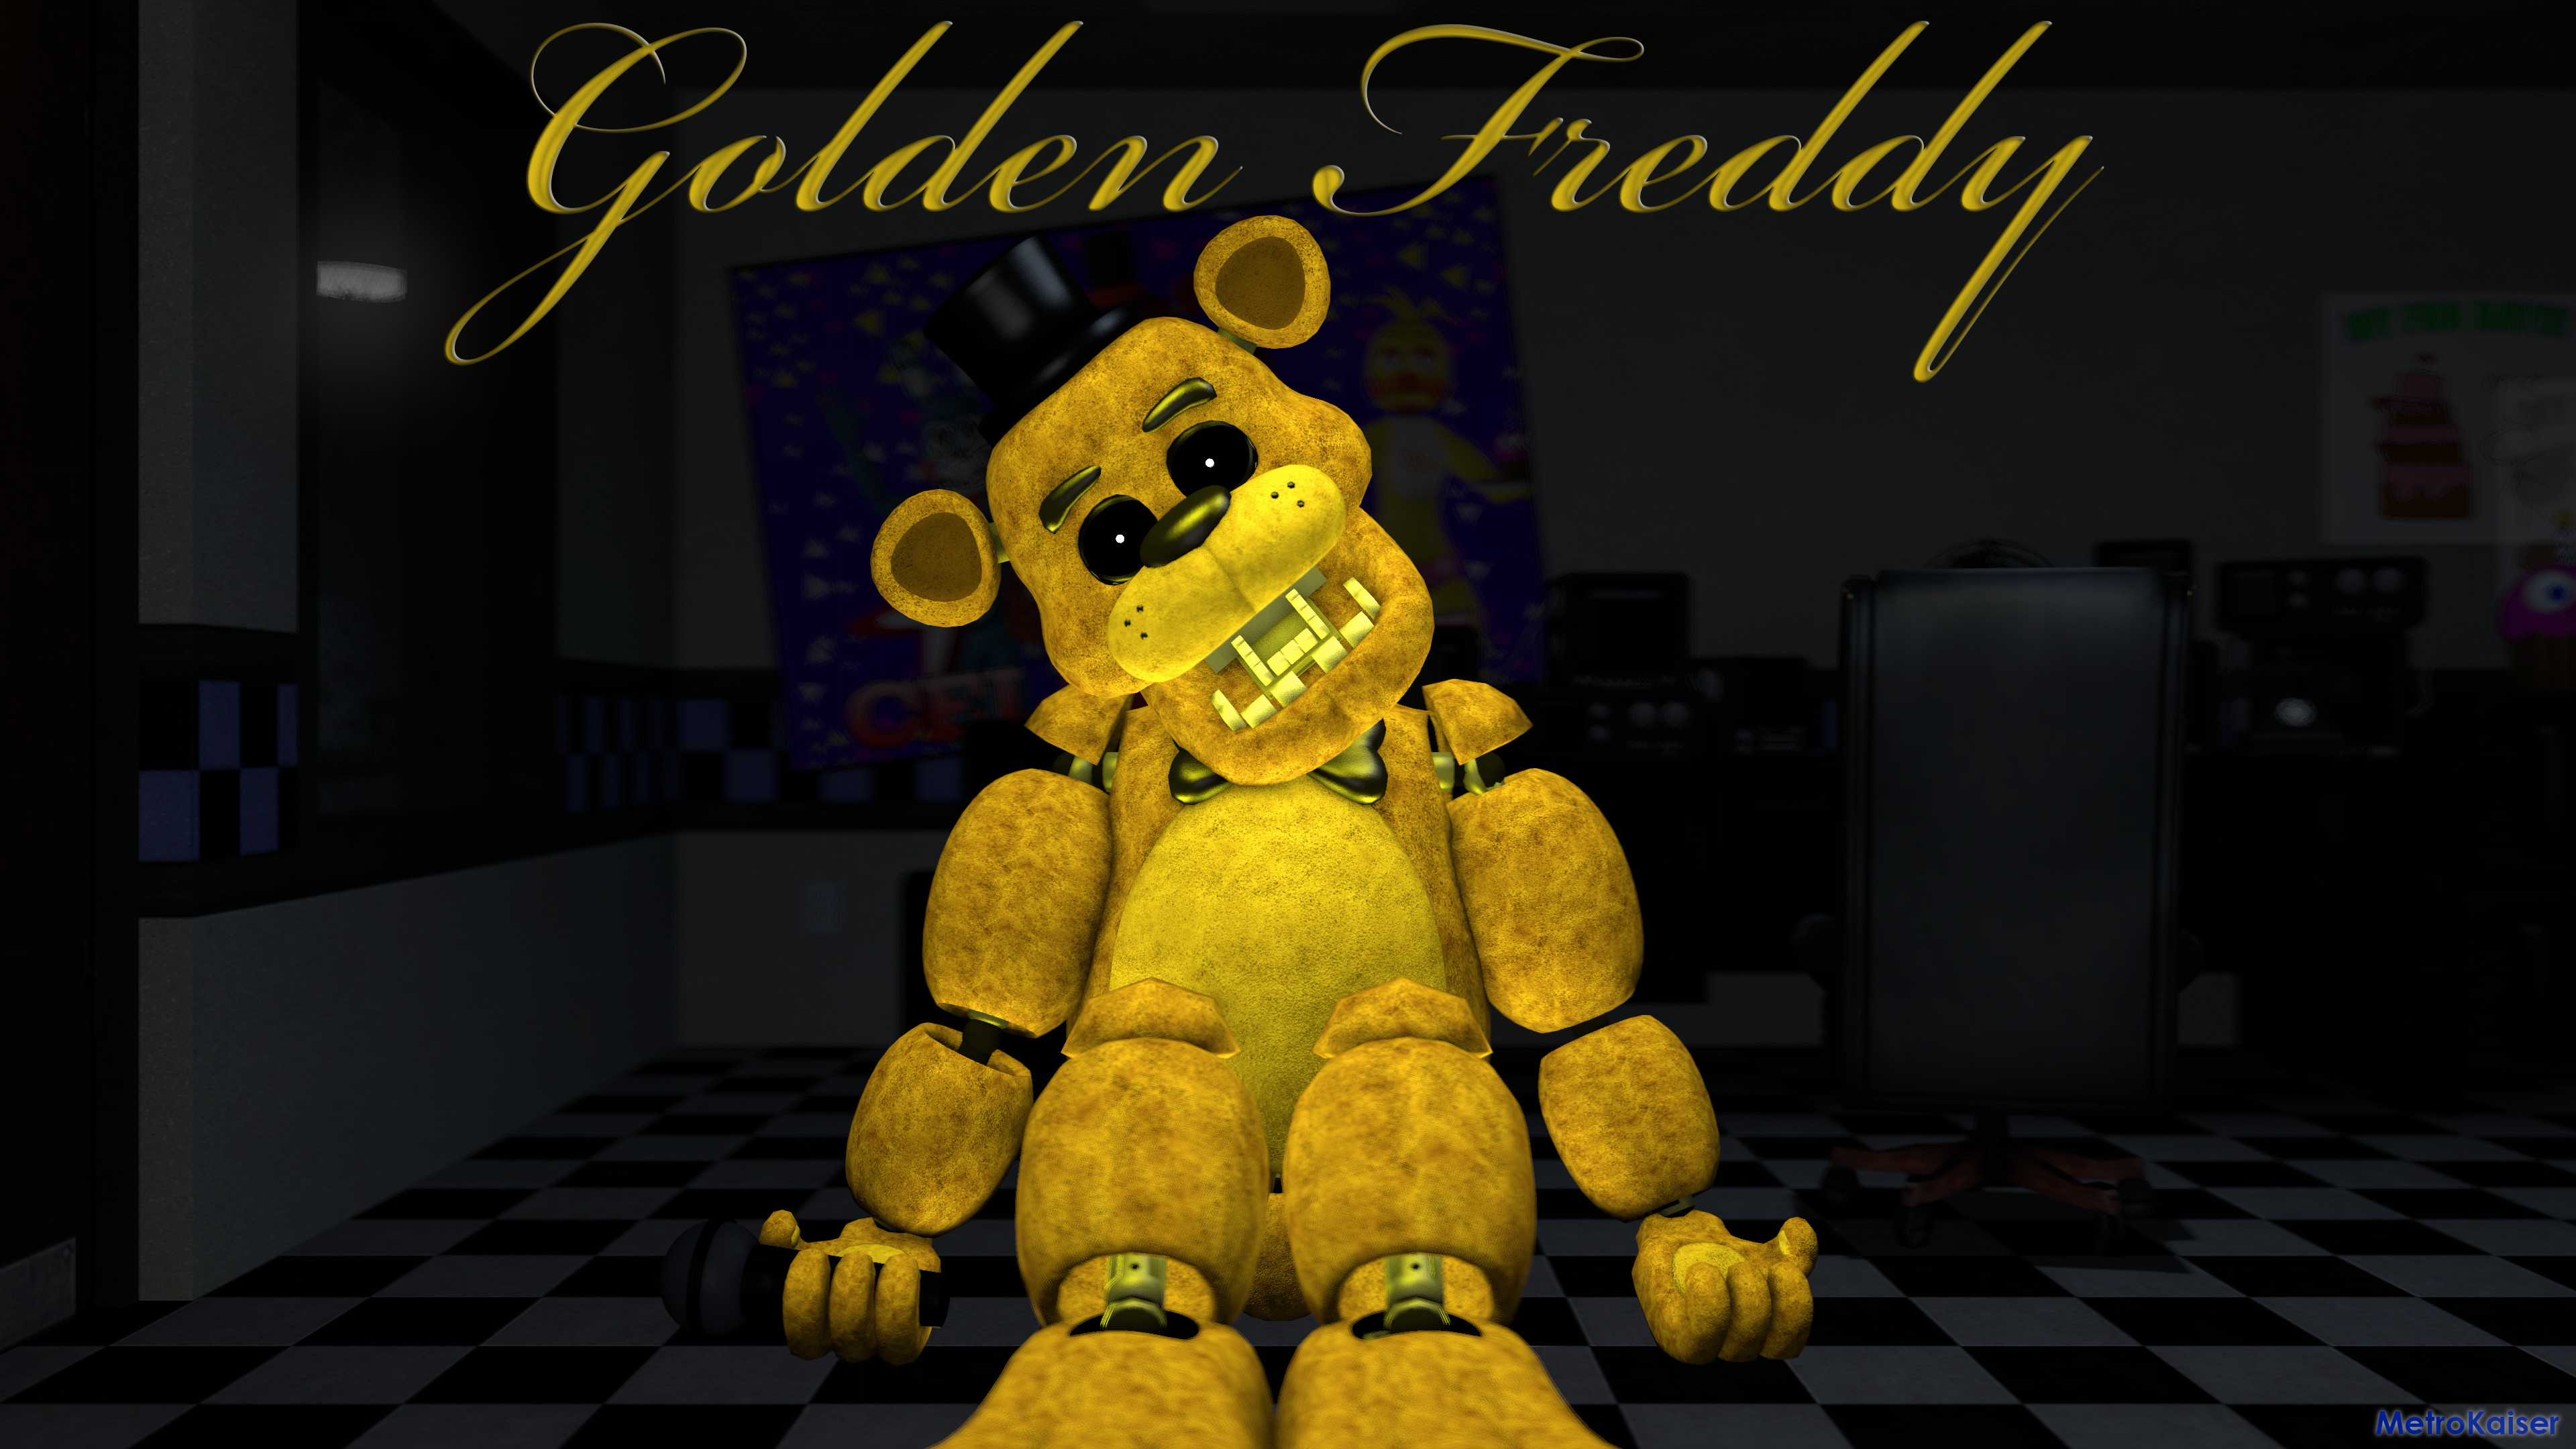 3840x2160 ... FNAF] Golden Freddy wallpaper (4K) by wstmetro